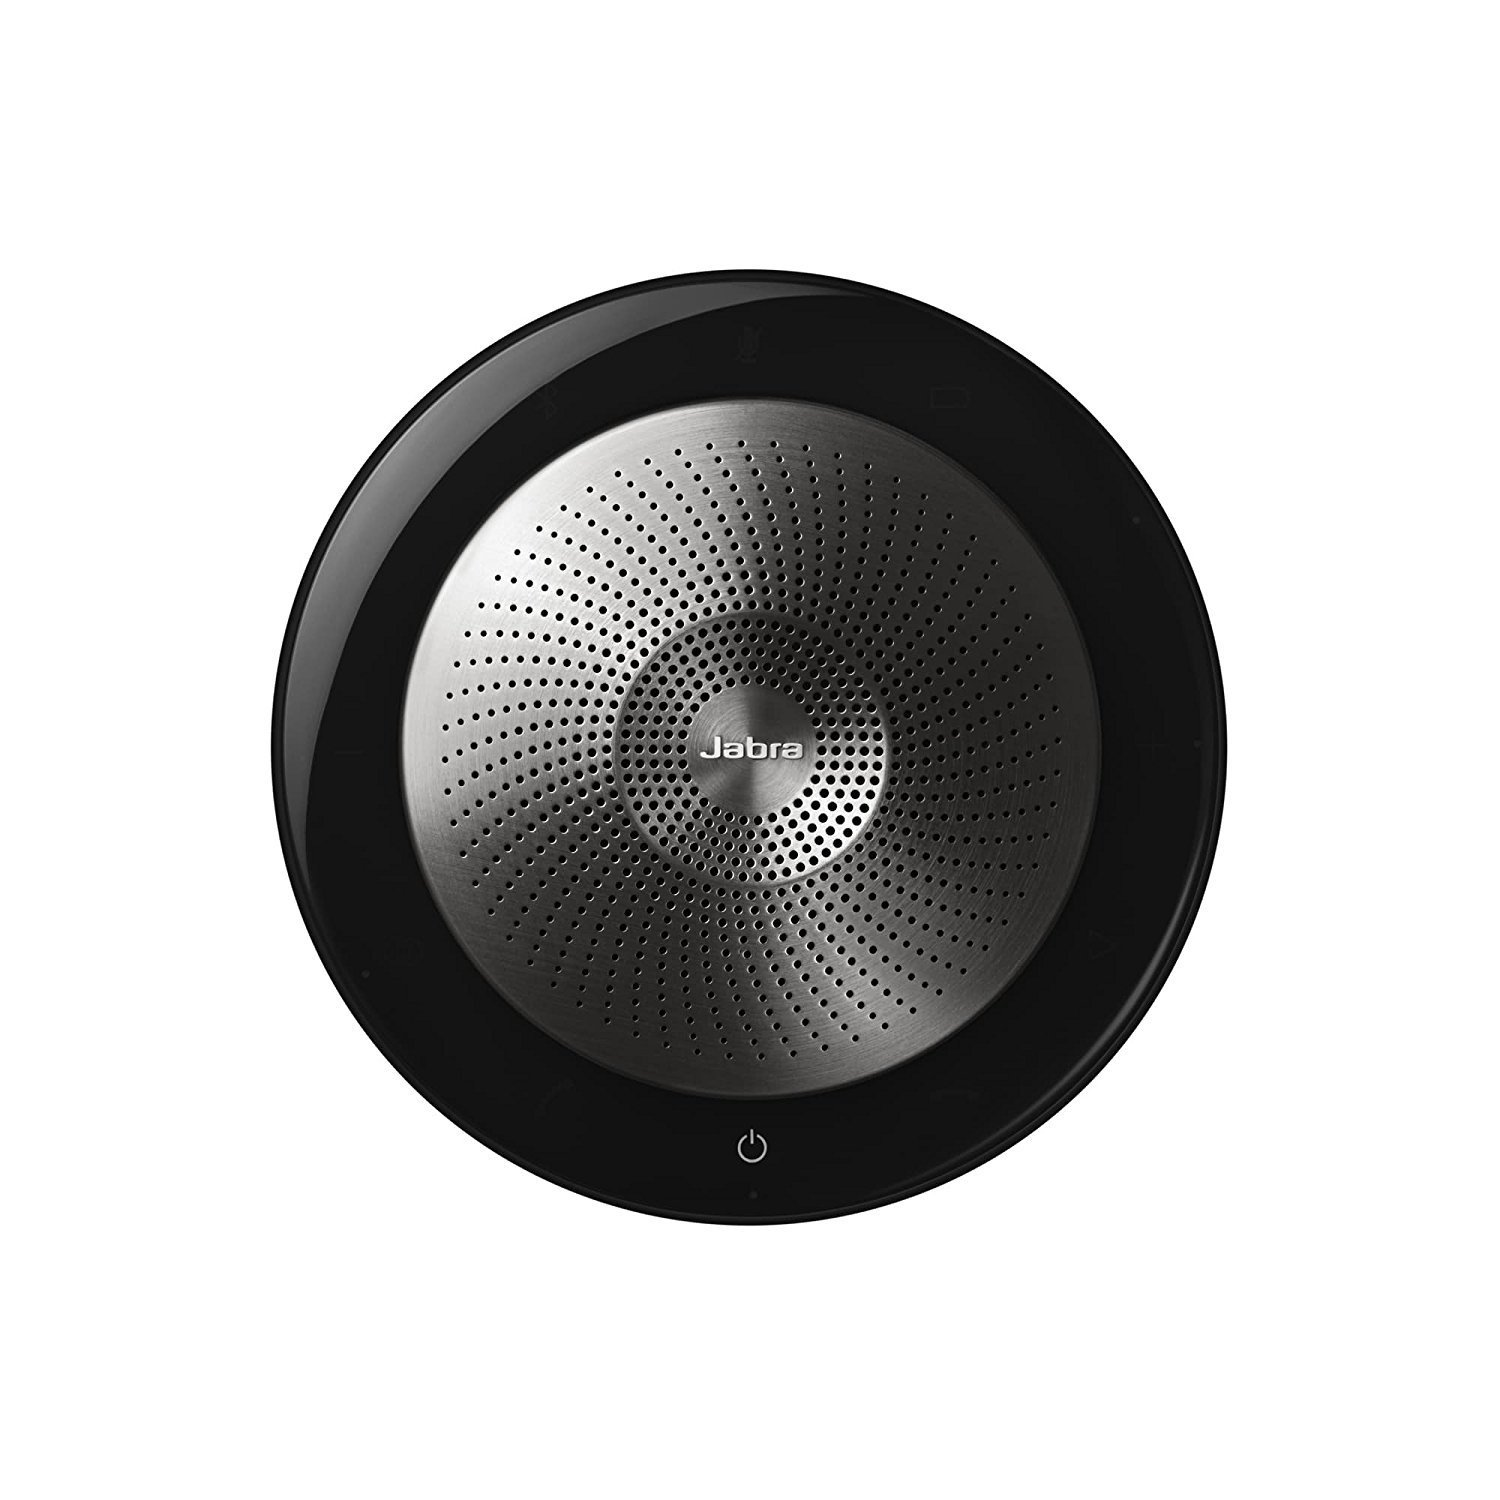 Jabra Speak 710 Wireless Bluetooth Speaker